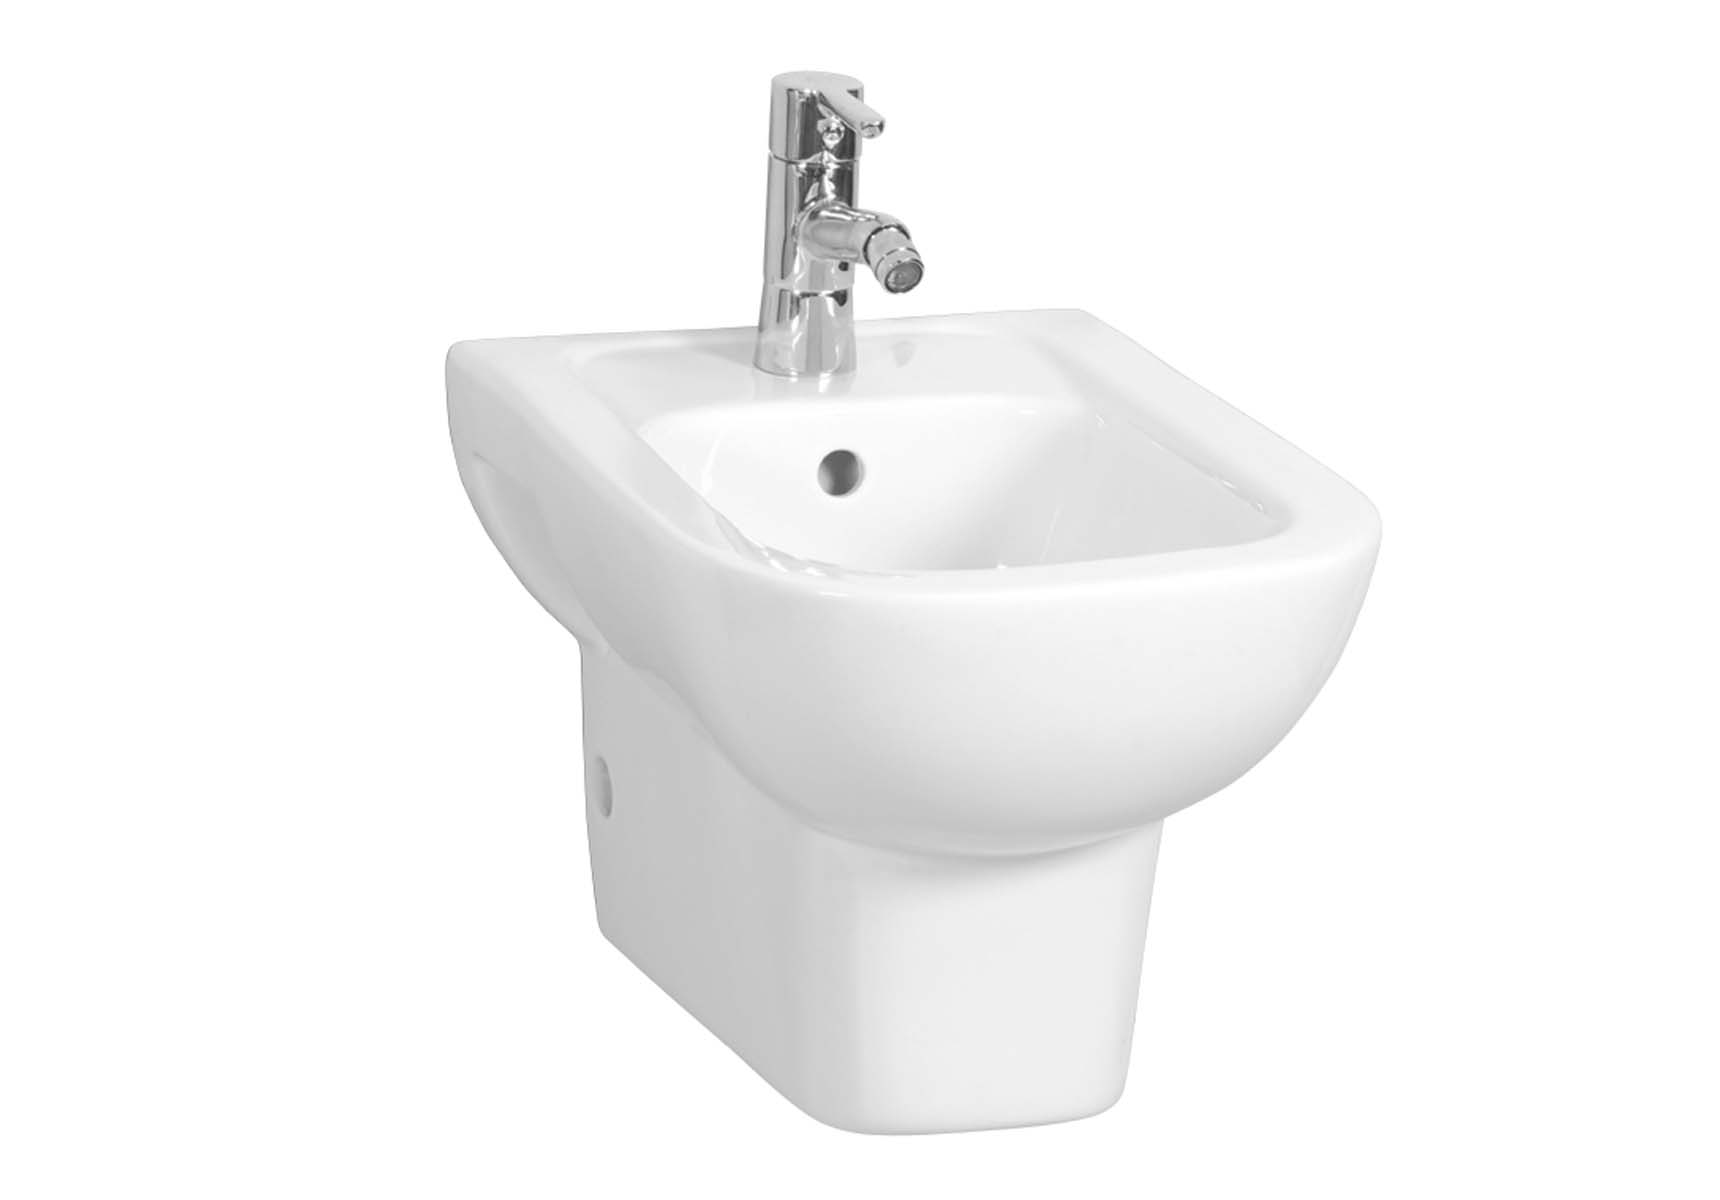 Retro Wall-Hung Bidet